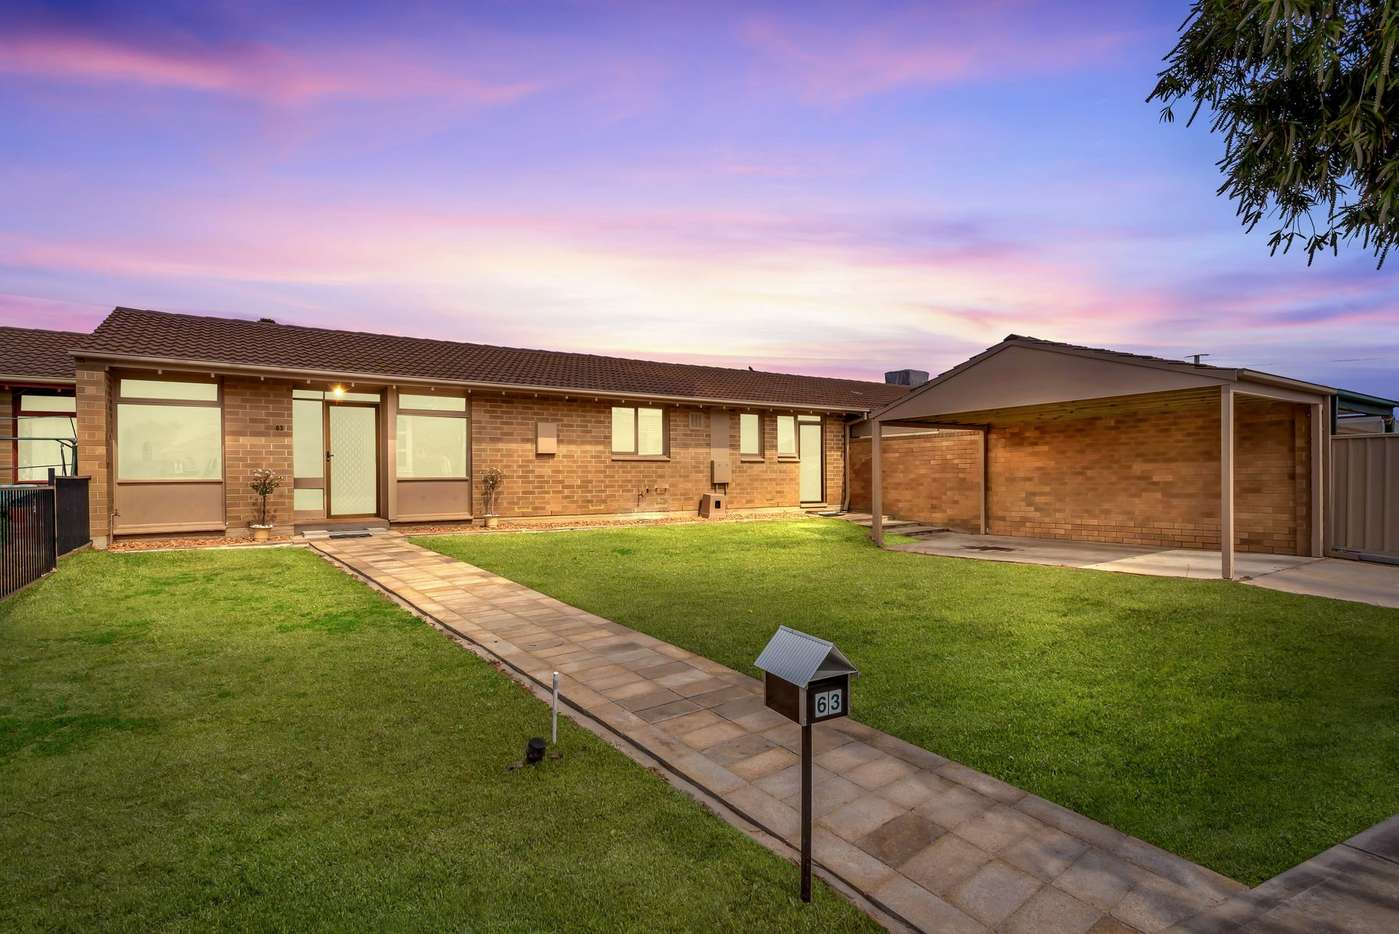 Main view of Homely house listing, 63 West Street, Semaphore Park, SA 5019